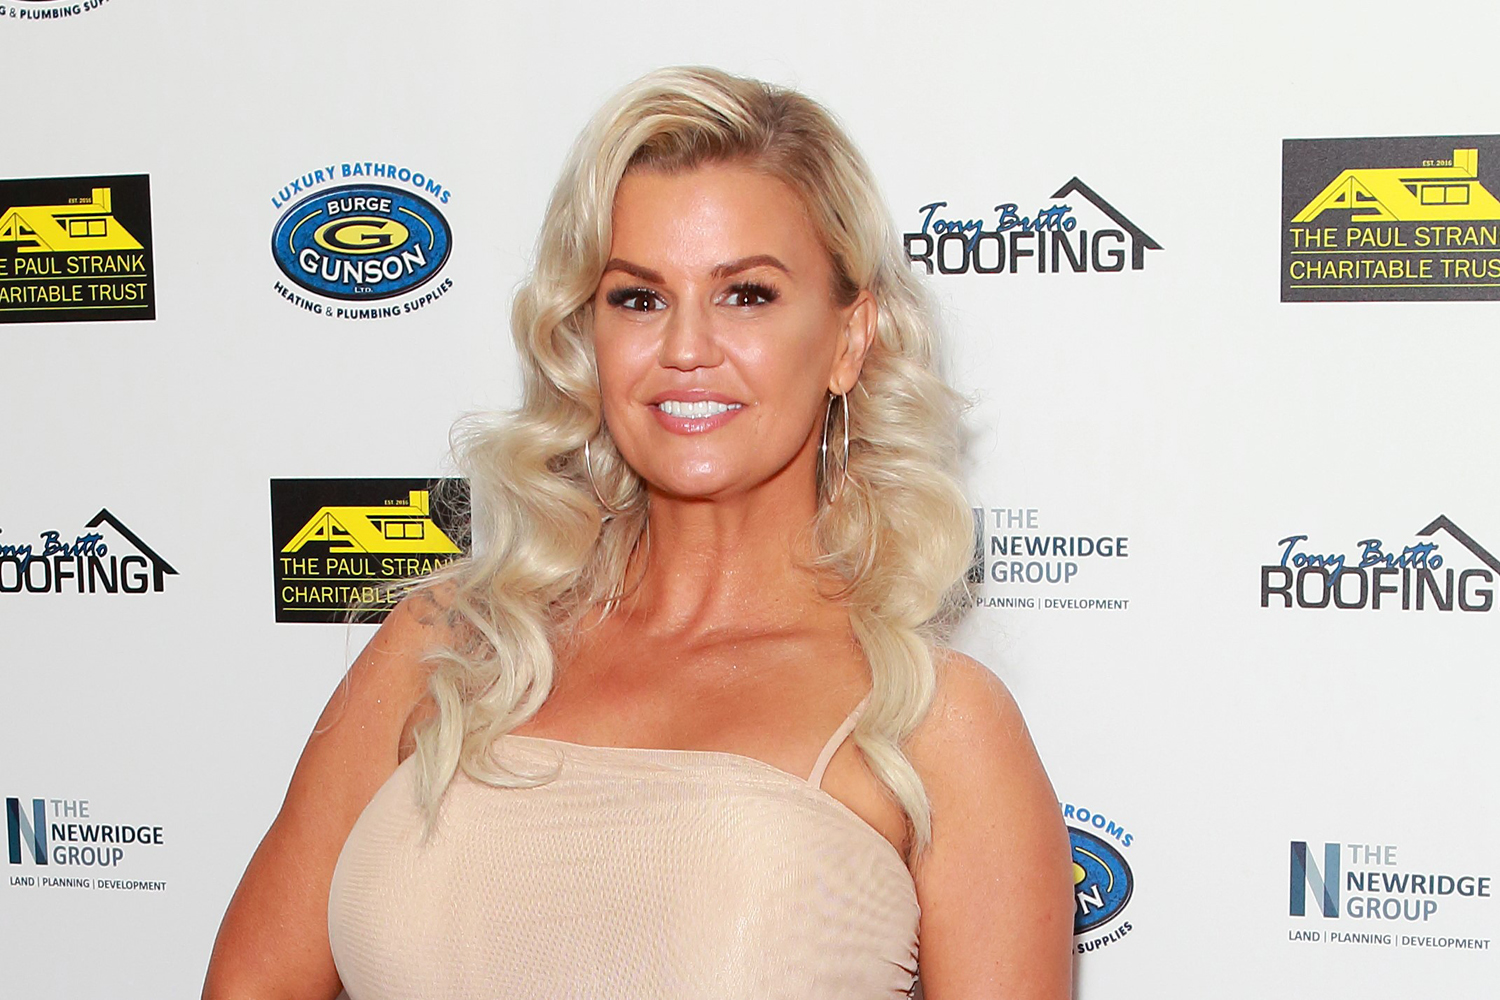 Kerry Katona fans say her daughter Lilly is her 'double' in new glam photos